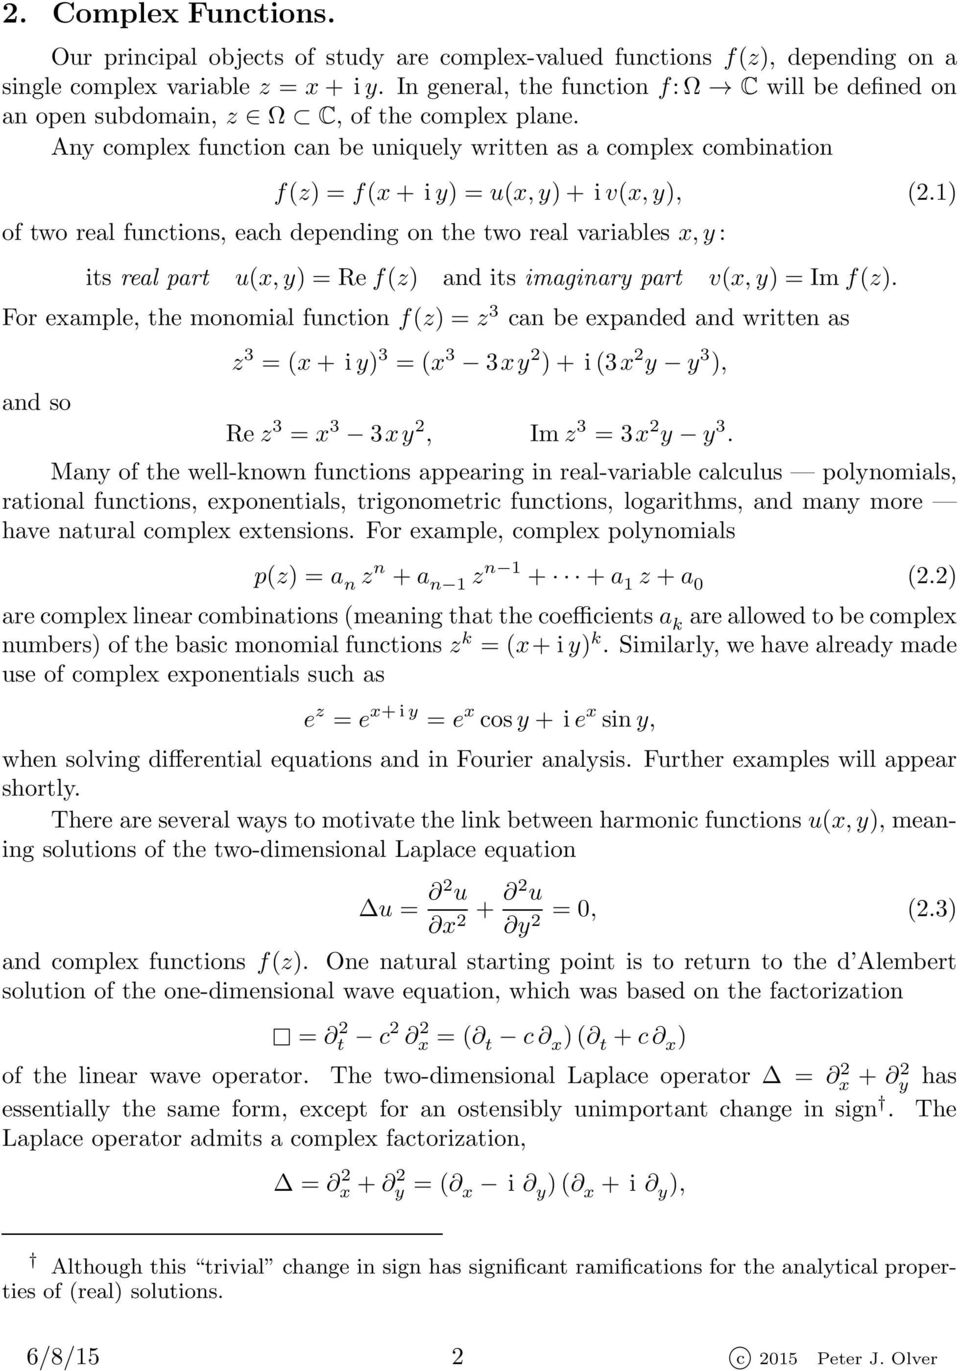 Complex Analysis and Conformal Mapping - PDF